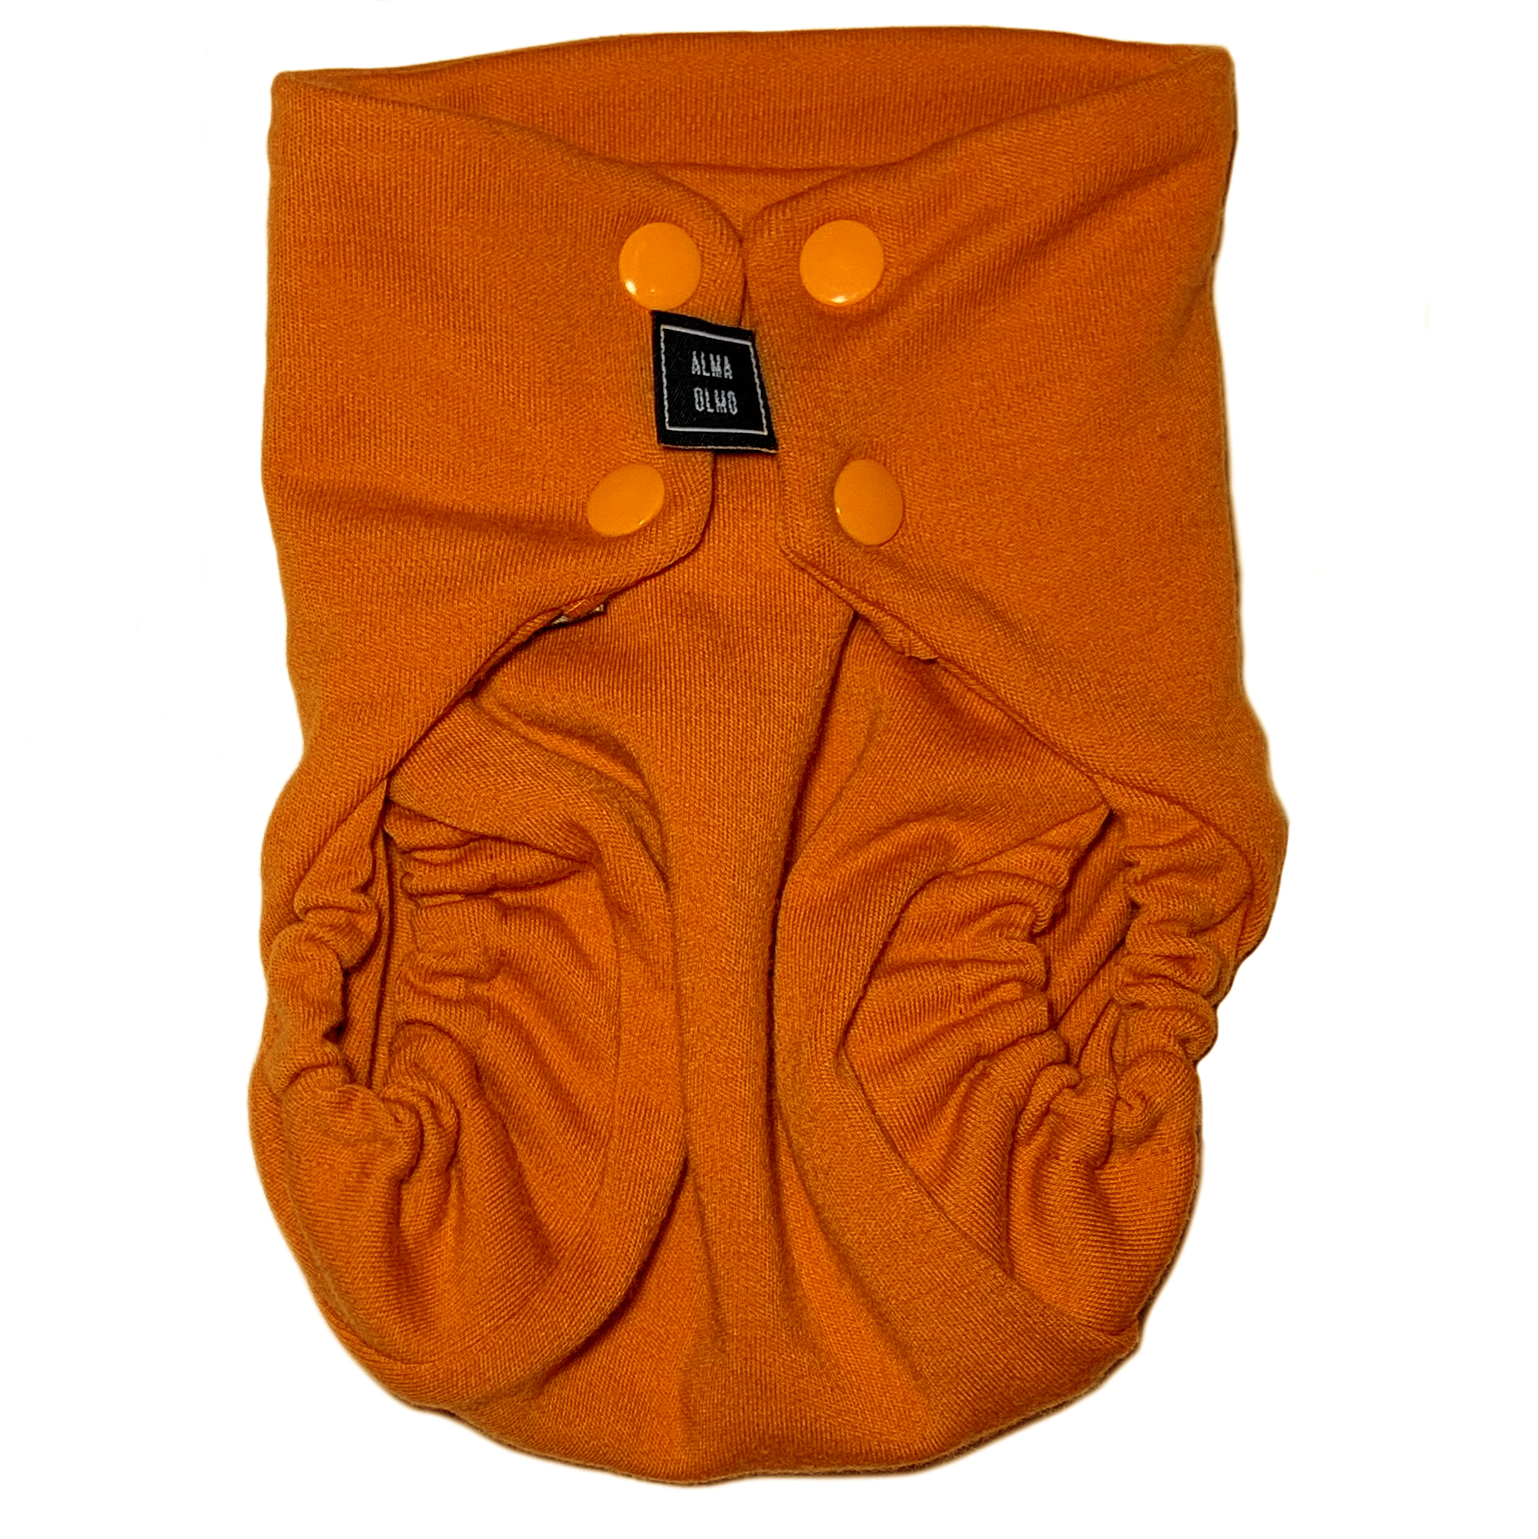 orange snap nappy picture taken from the front